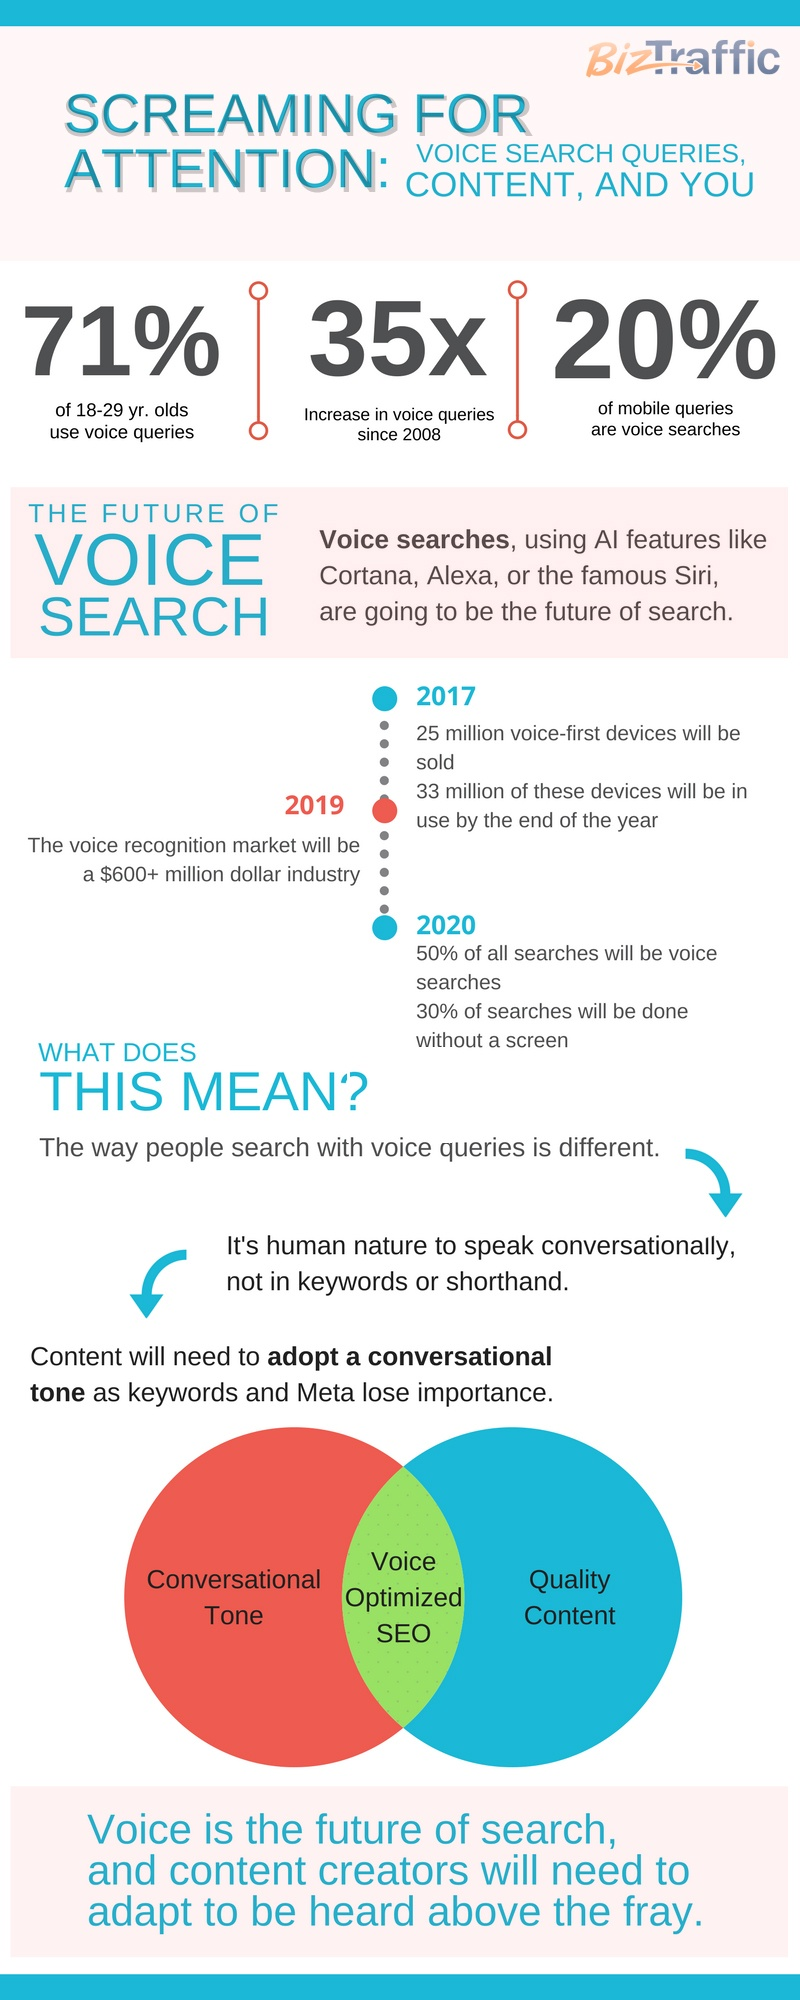 How does voice search impact your SEO strategy?